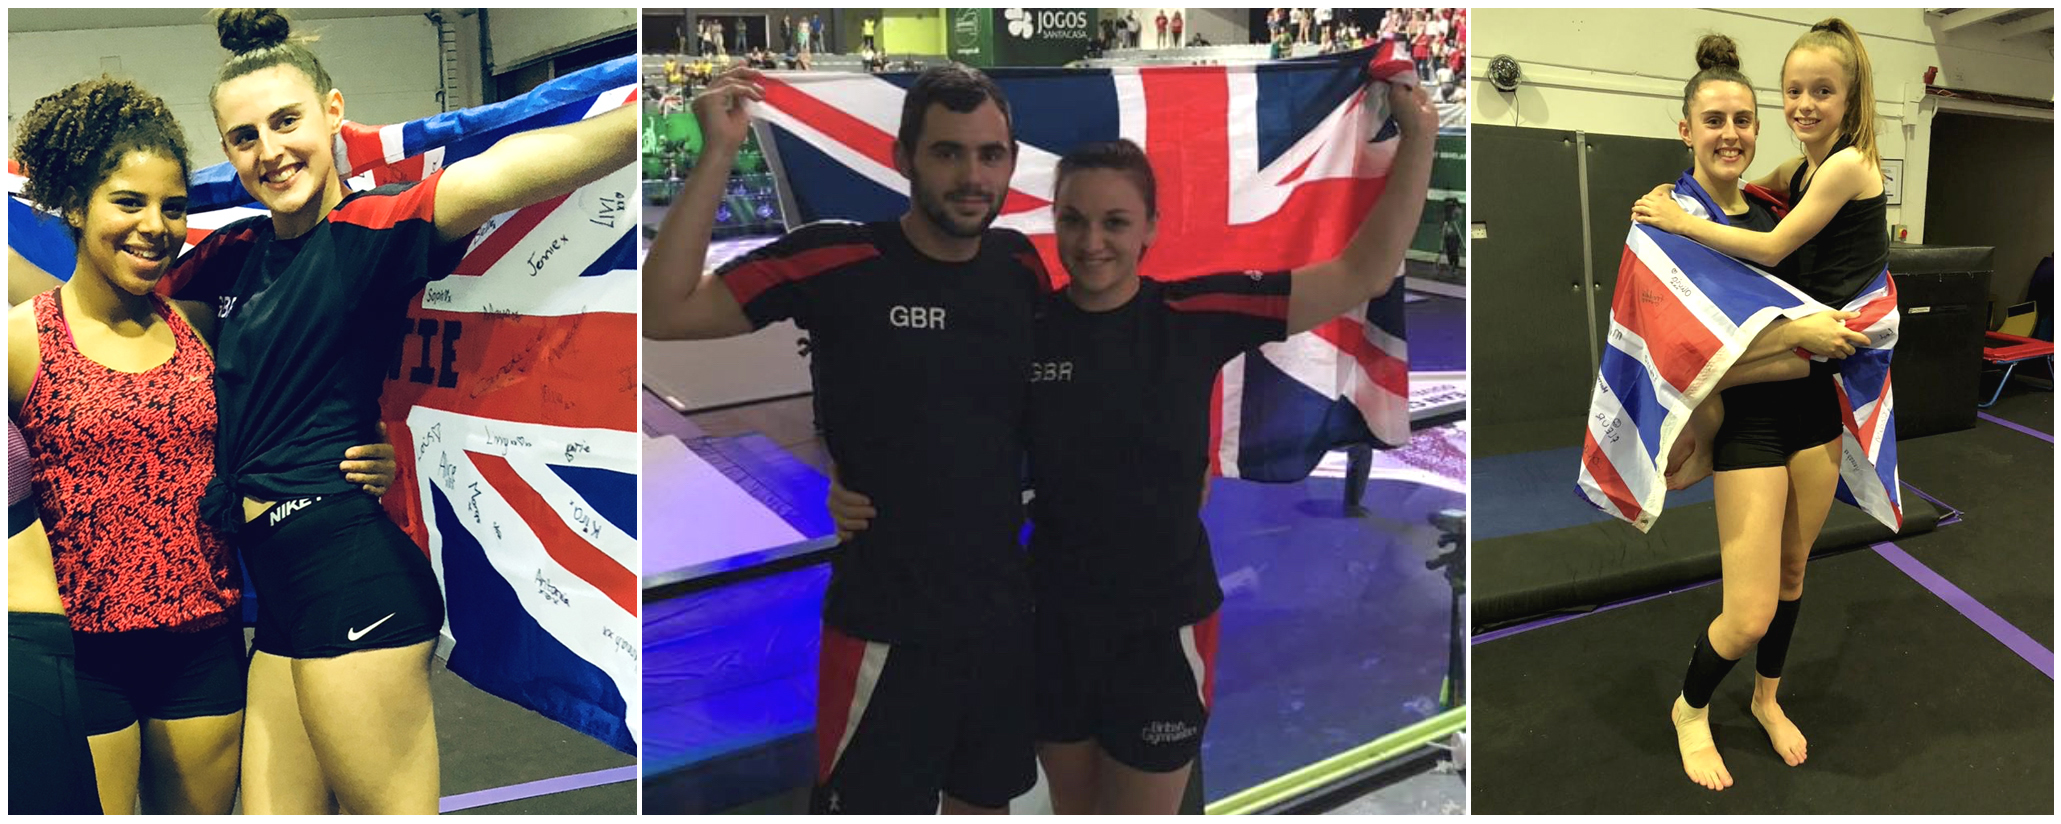 [1] Larissa Royal with Katie Iles have also been selected to take part at the TeamGym European Championships, representing Great Britain [2] James Langley, who was also recently made the development coach, alongside Stacey Godden, TeamGym manager  [3] Katie Iles with Paige Phillips. The age of the group ranges from 12-years-old to 22-years-old